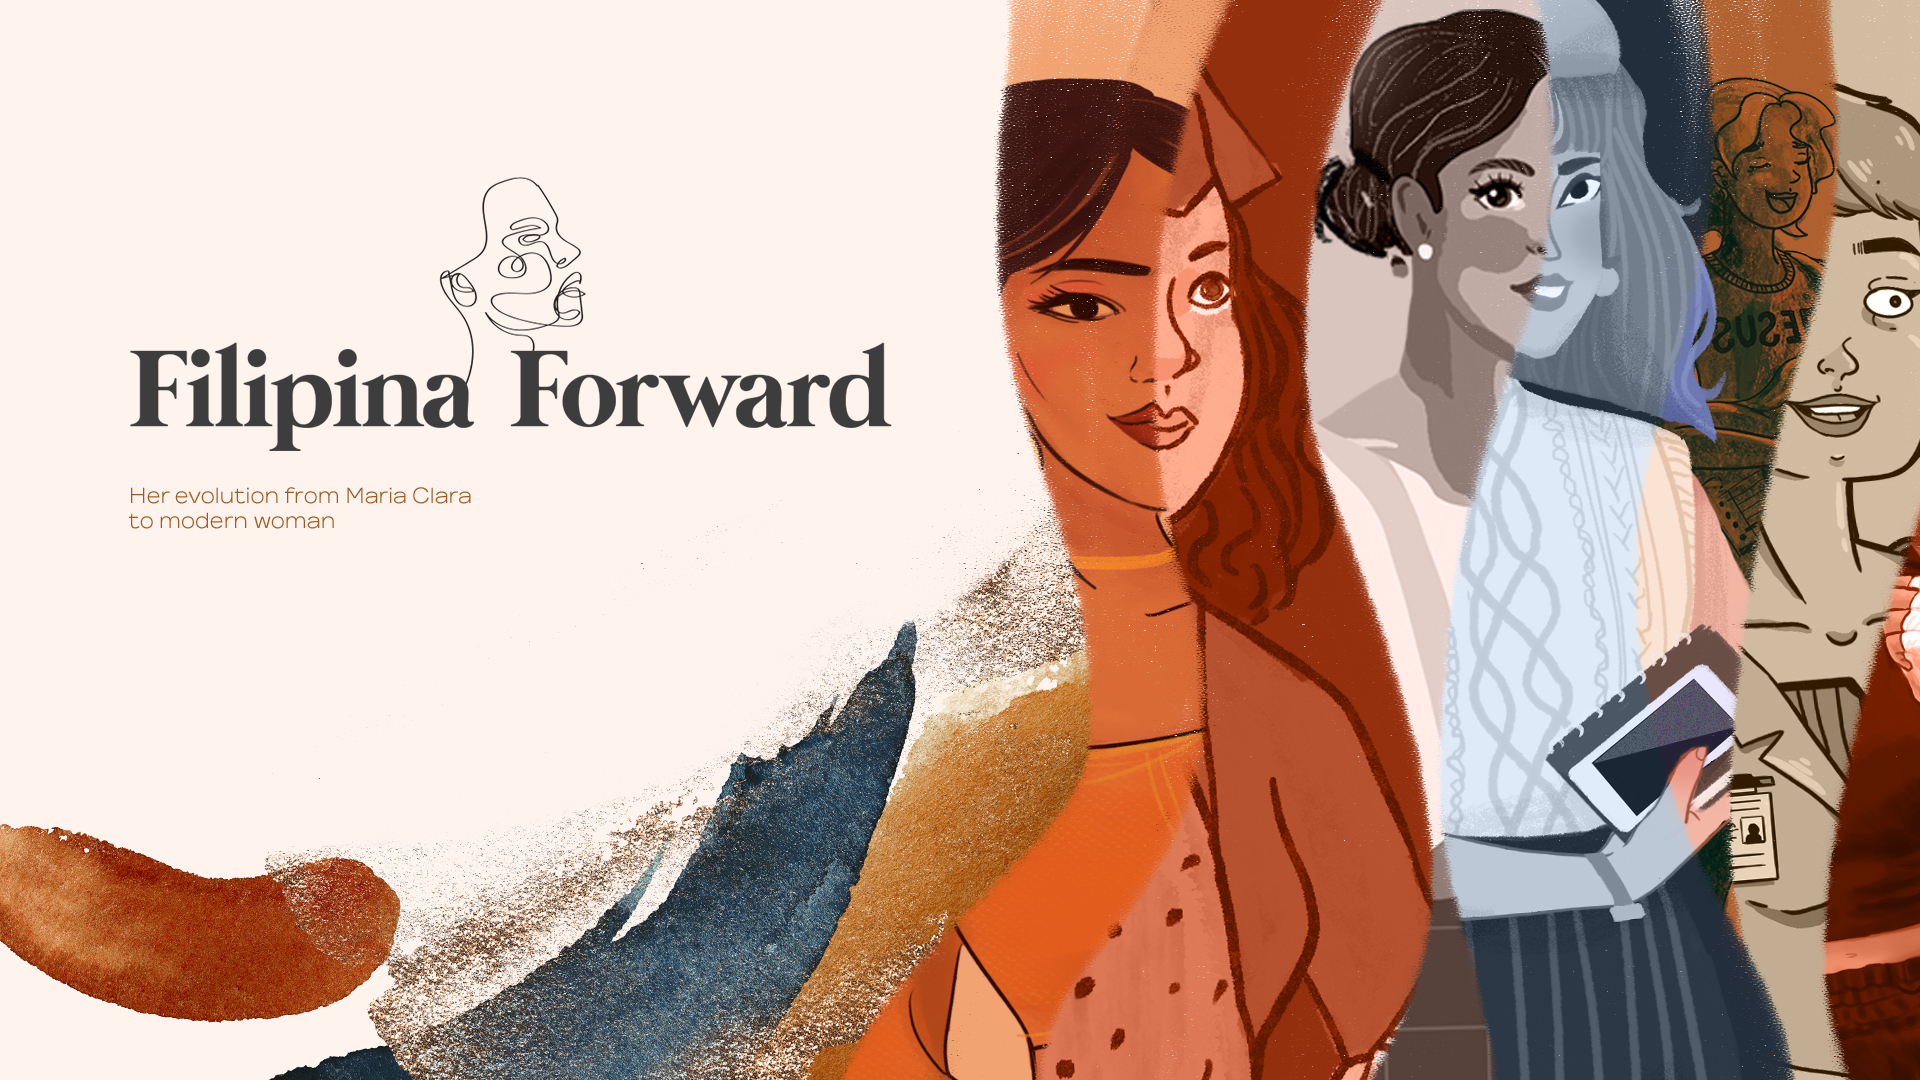 Filipina Forward Reflects the Goals and Outlook of the Filipina During the Pandemic